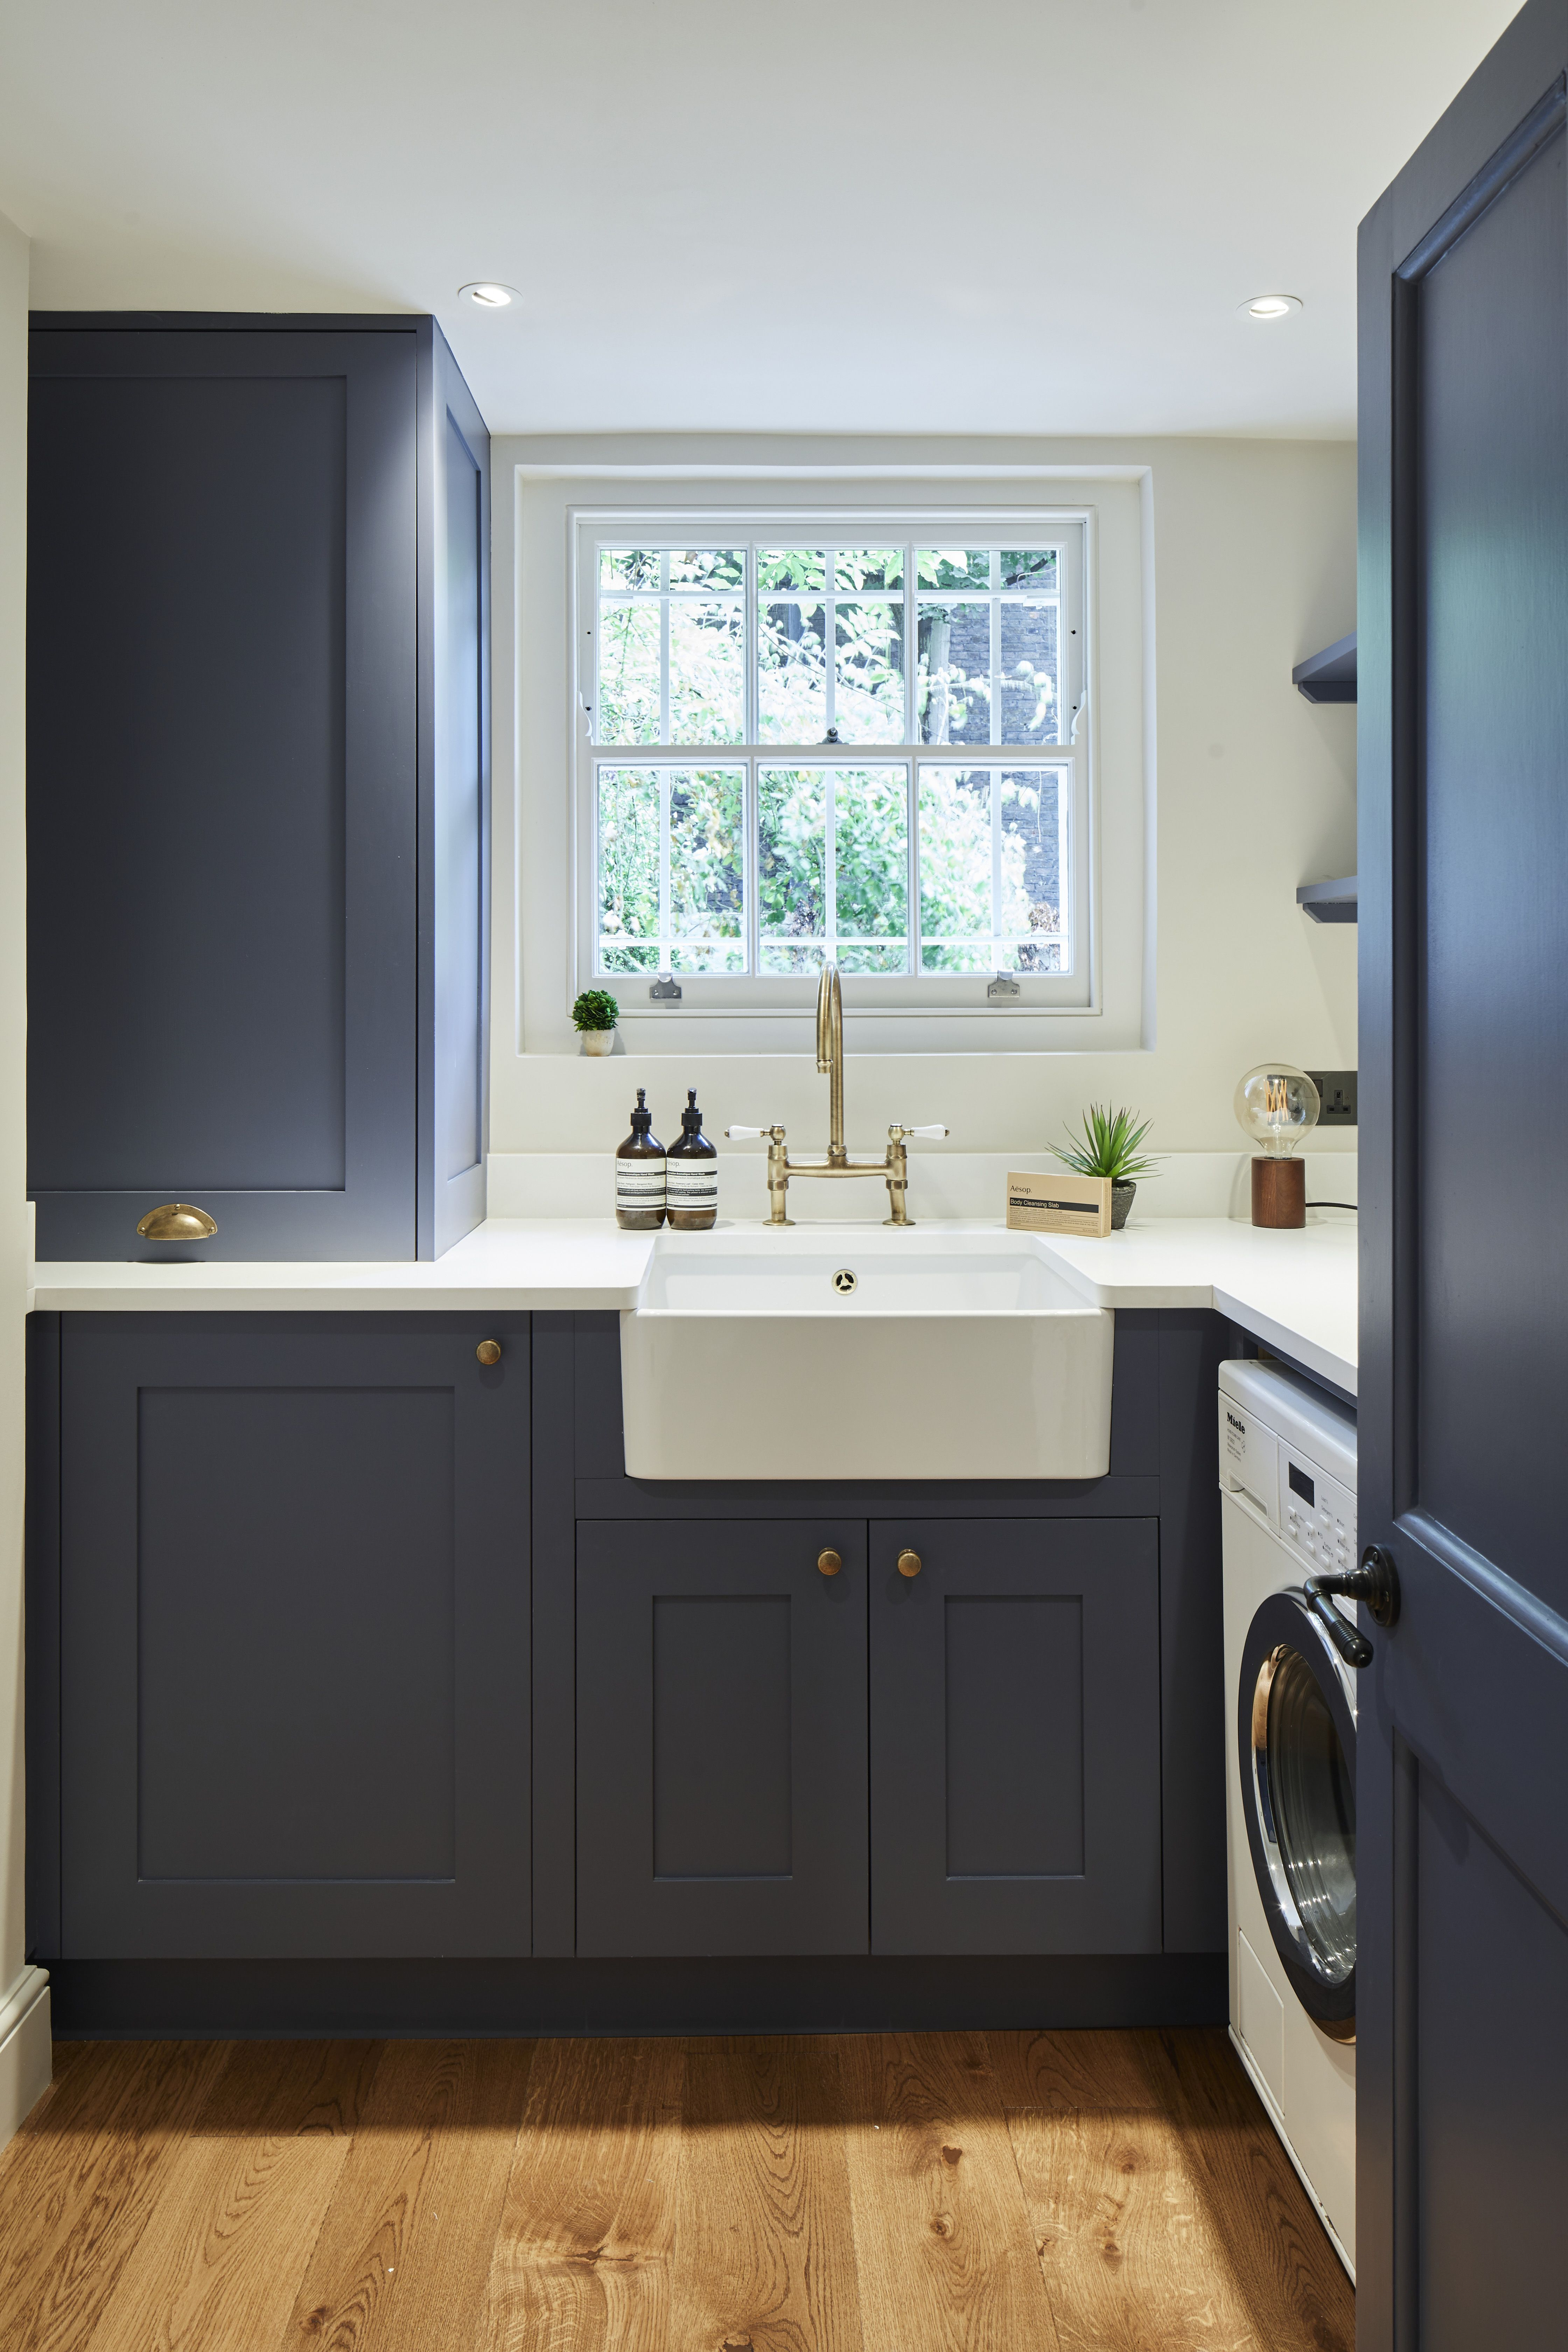 Based In The Heart Of Kensington In London The Holland Street Kitchens Team Is Used To Turnin Bespoke Kitchen Design Bespoke Kitchen Cabinets Bespoke Kitchens